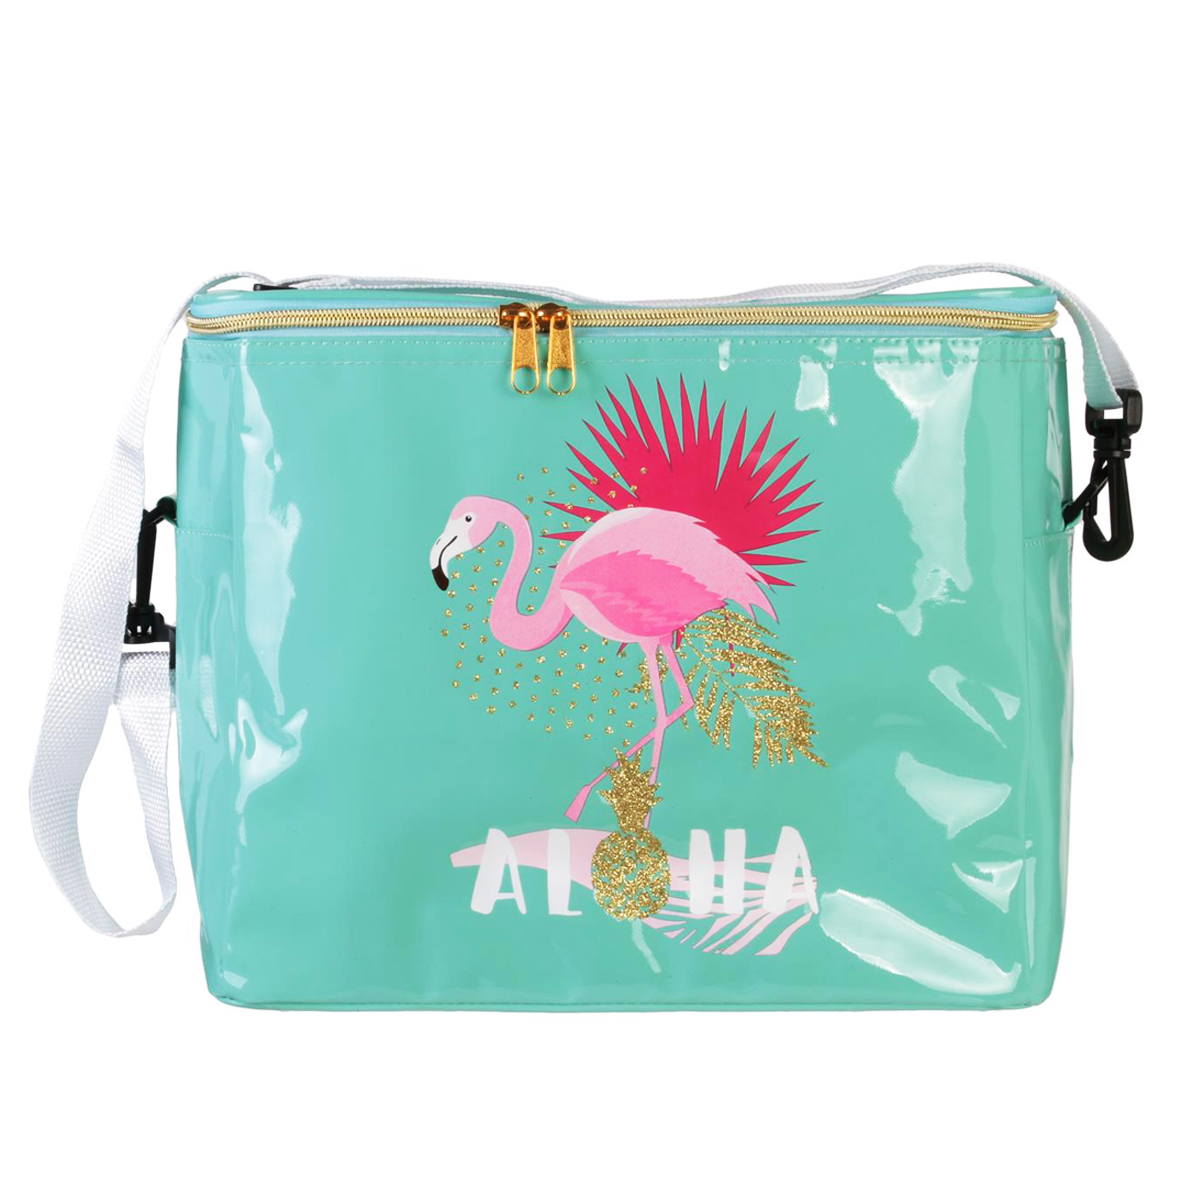 Sac isotherme \'Tropical\' turquoise (flamant rose) - 30x27x17 cm (135L) - [Q8111]